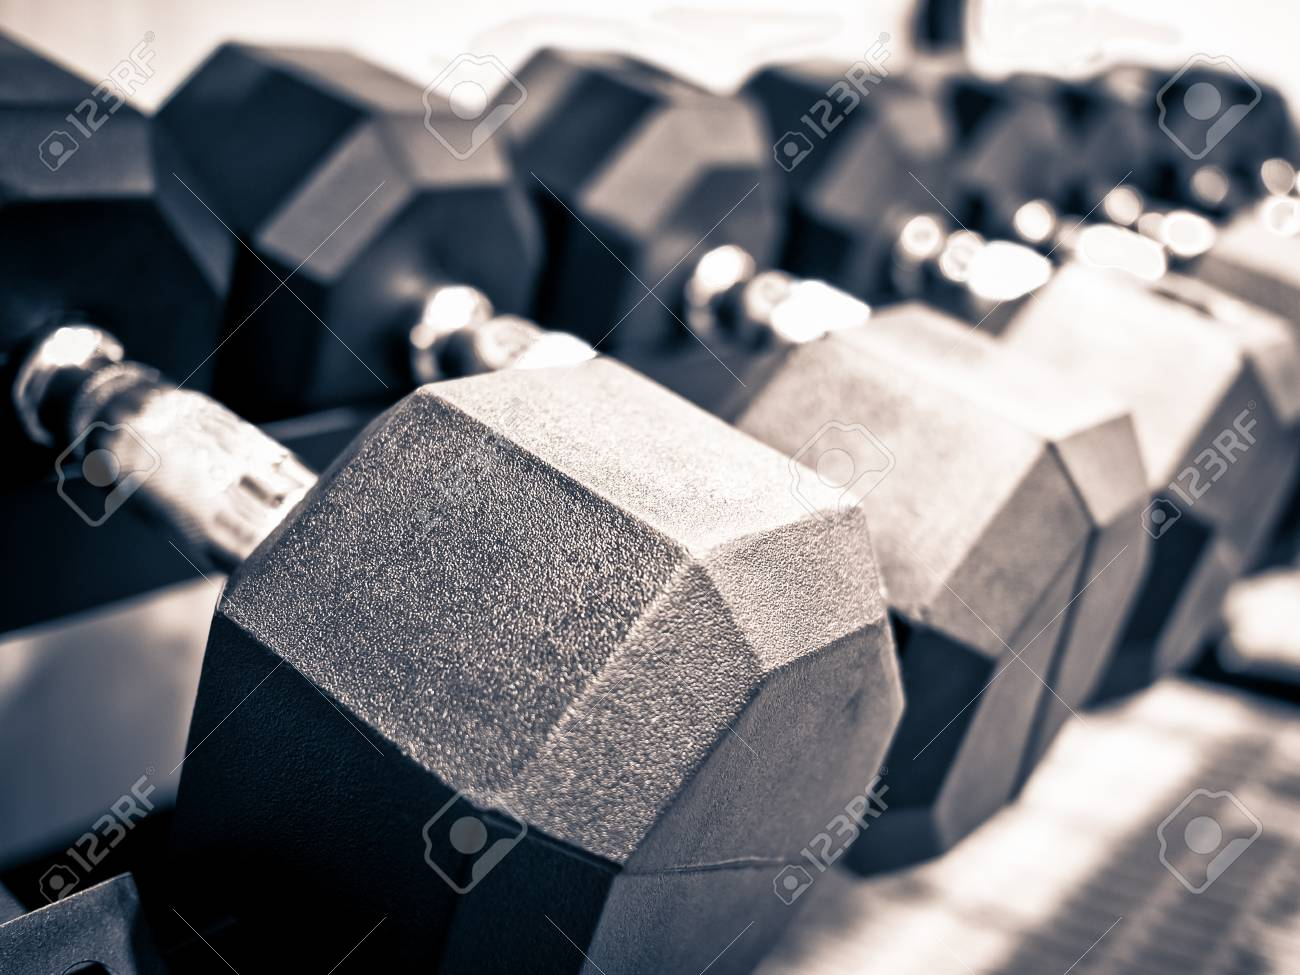 Rack Of Hand Free Weight Dumbbells At A Healthclub Gym Stock Photo Picture And Royalty Free Image Image 77878989